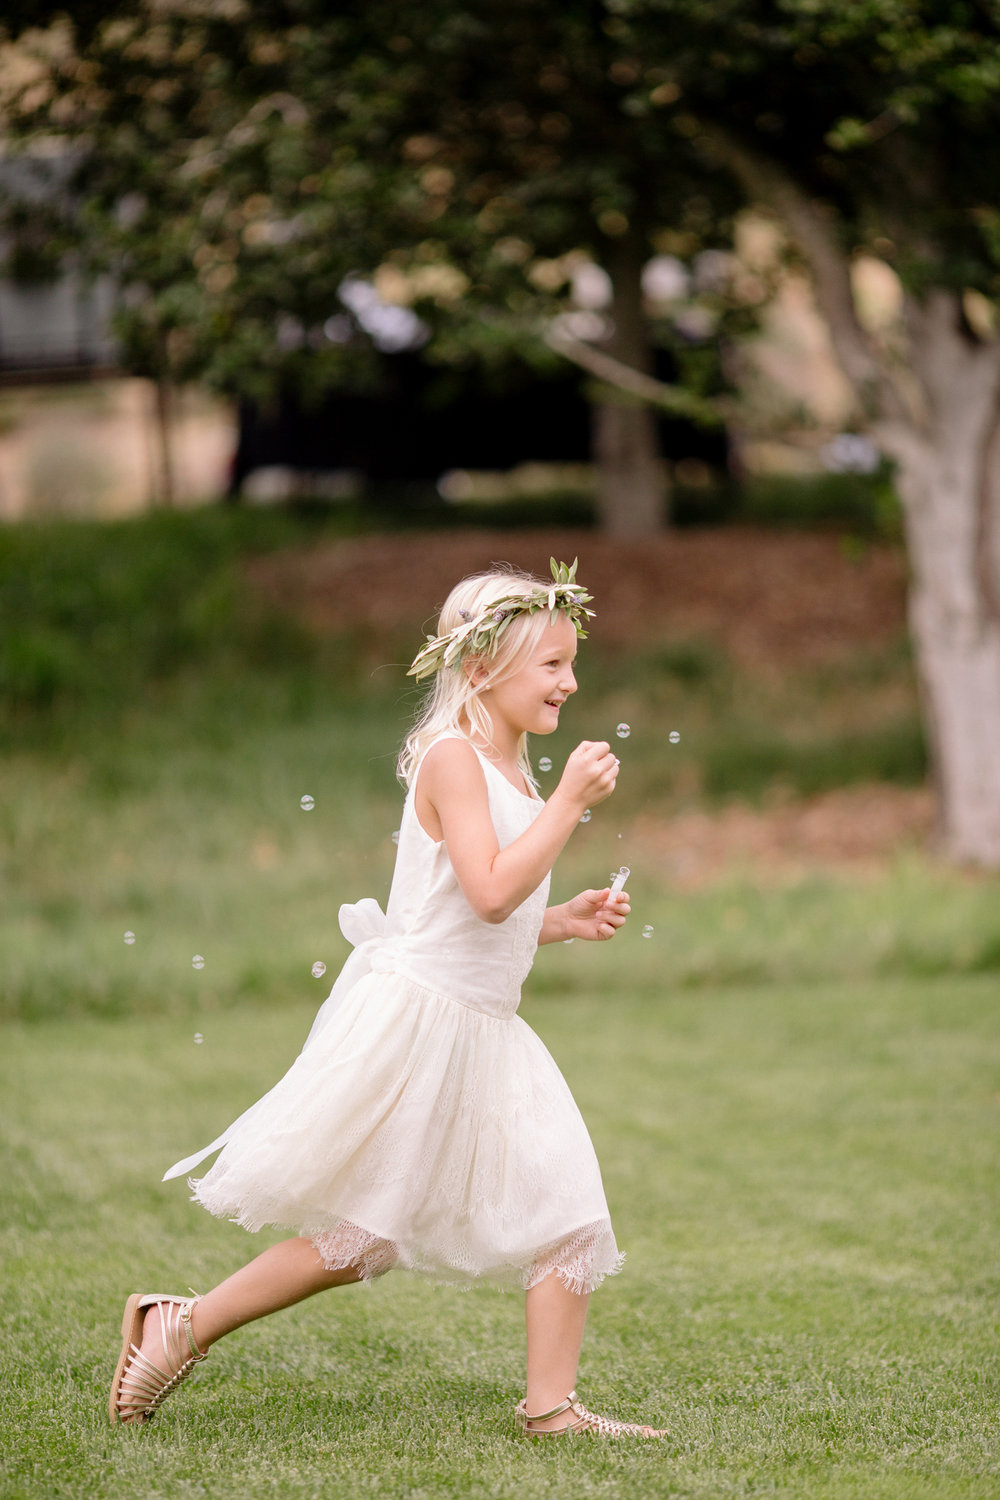 9-flower-girl-blowing-bubbles.jpg